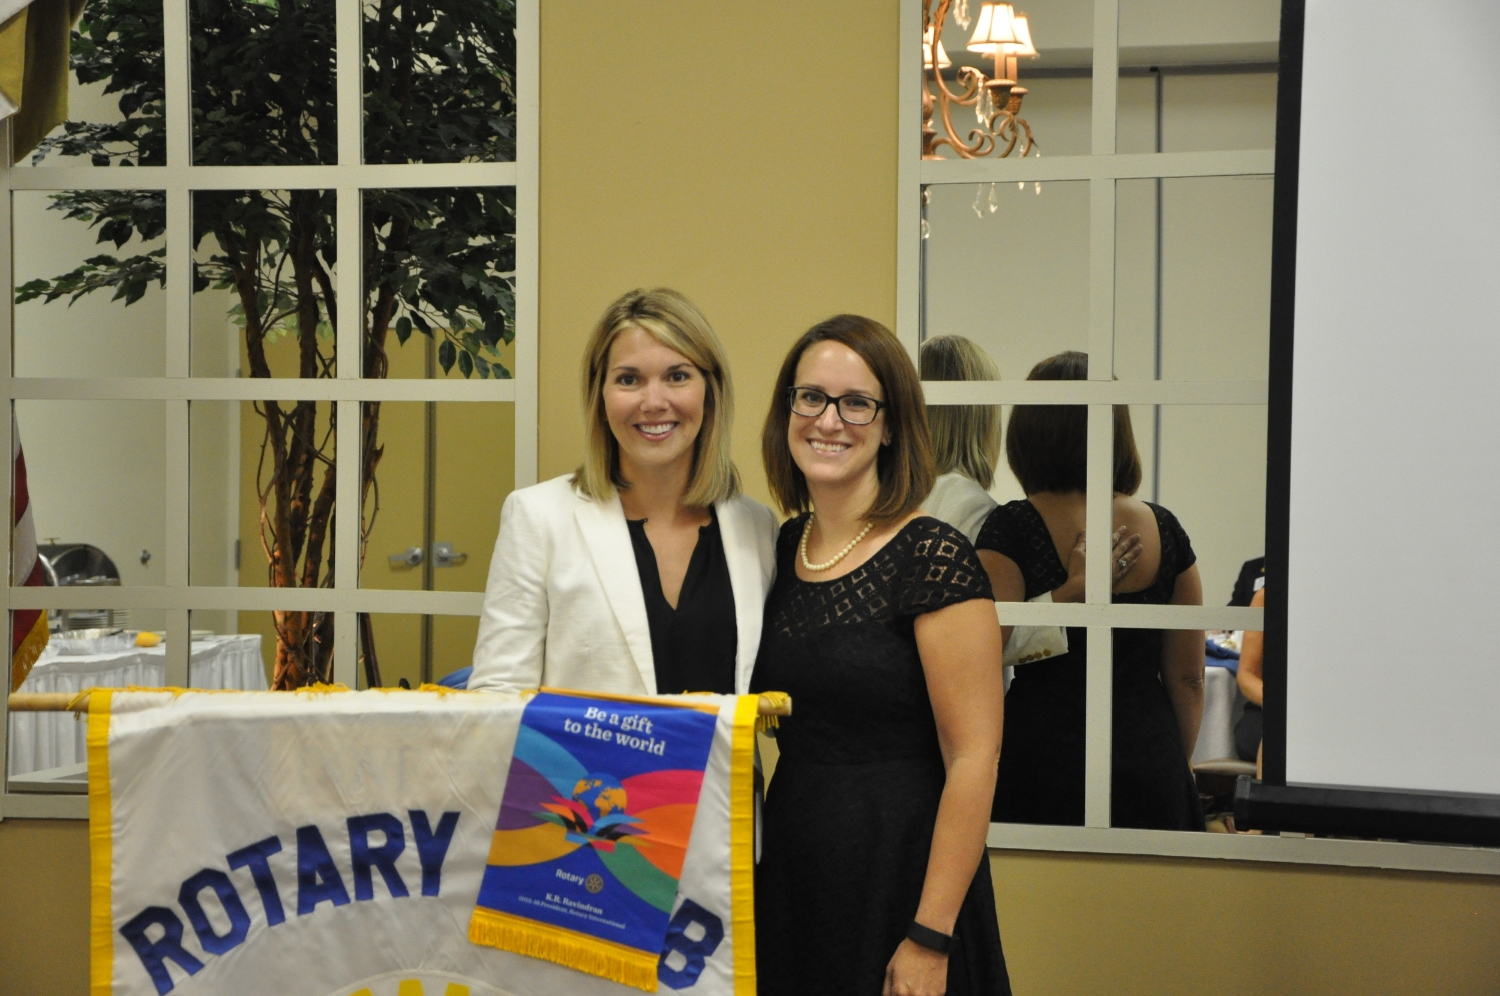 Club President, Amy Luppens and 2015-2016 Rotarian of the Year, Dr. Sarah Guy